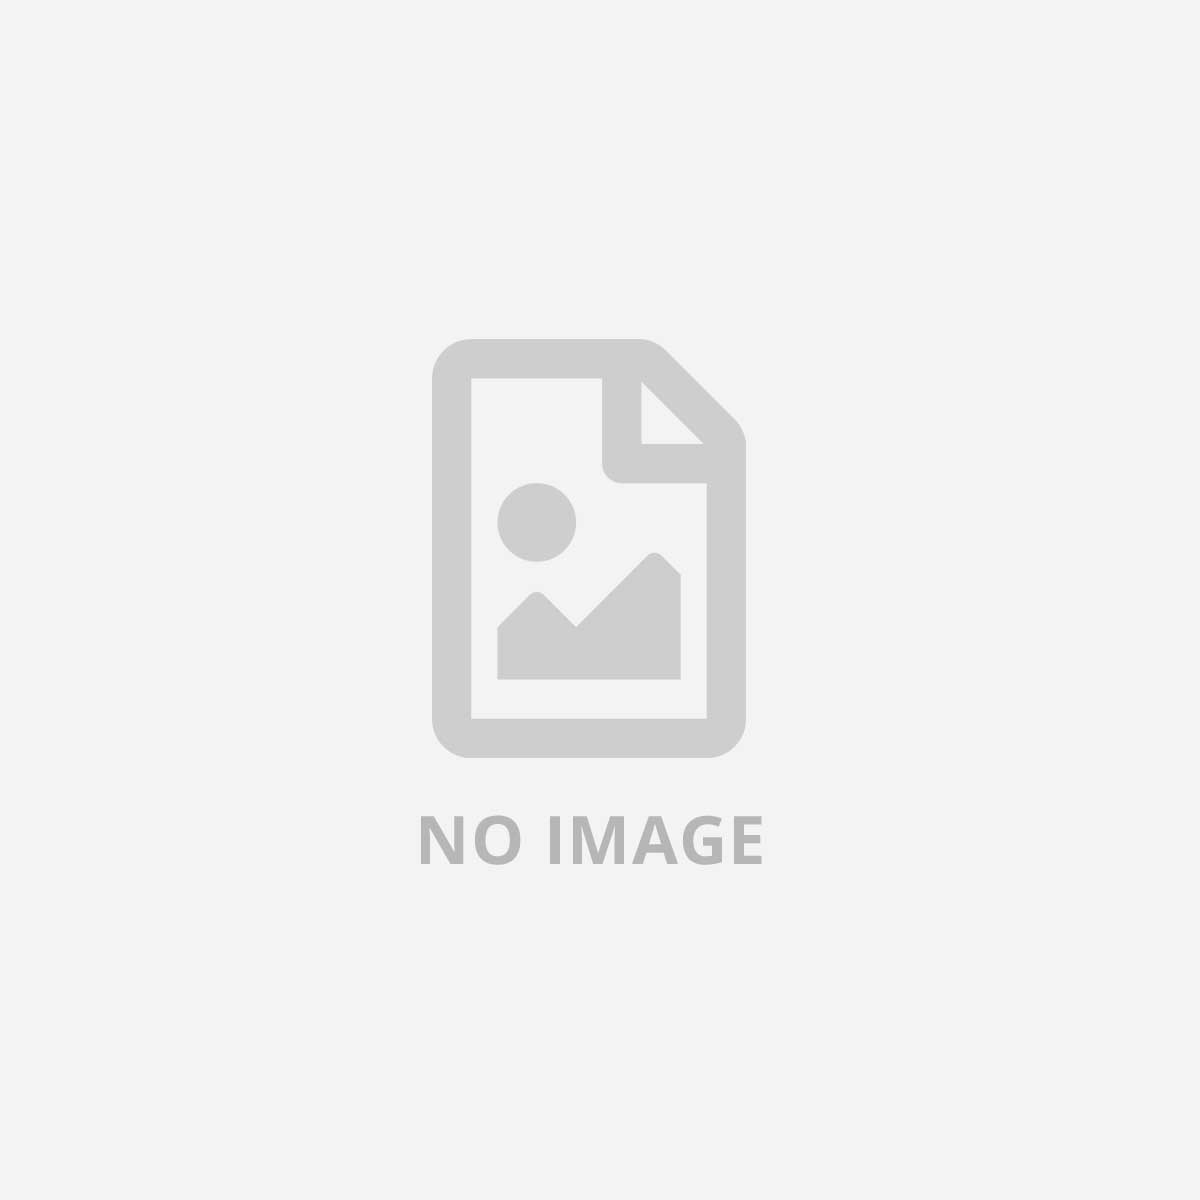 KOCH MEDIA XONE AGENTS OF MAYHEM